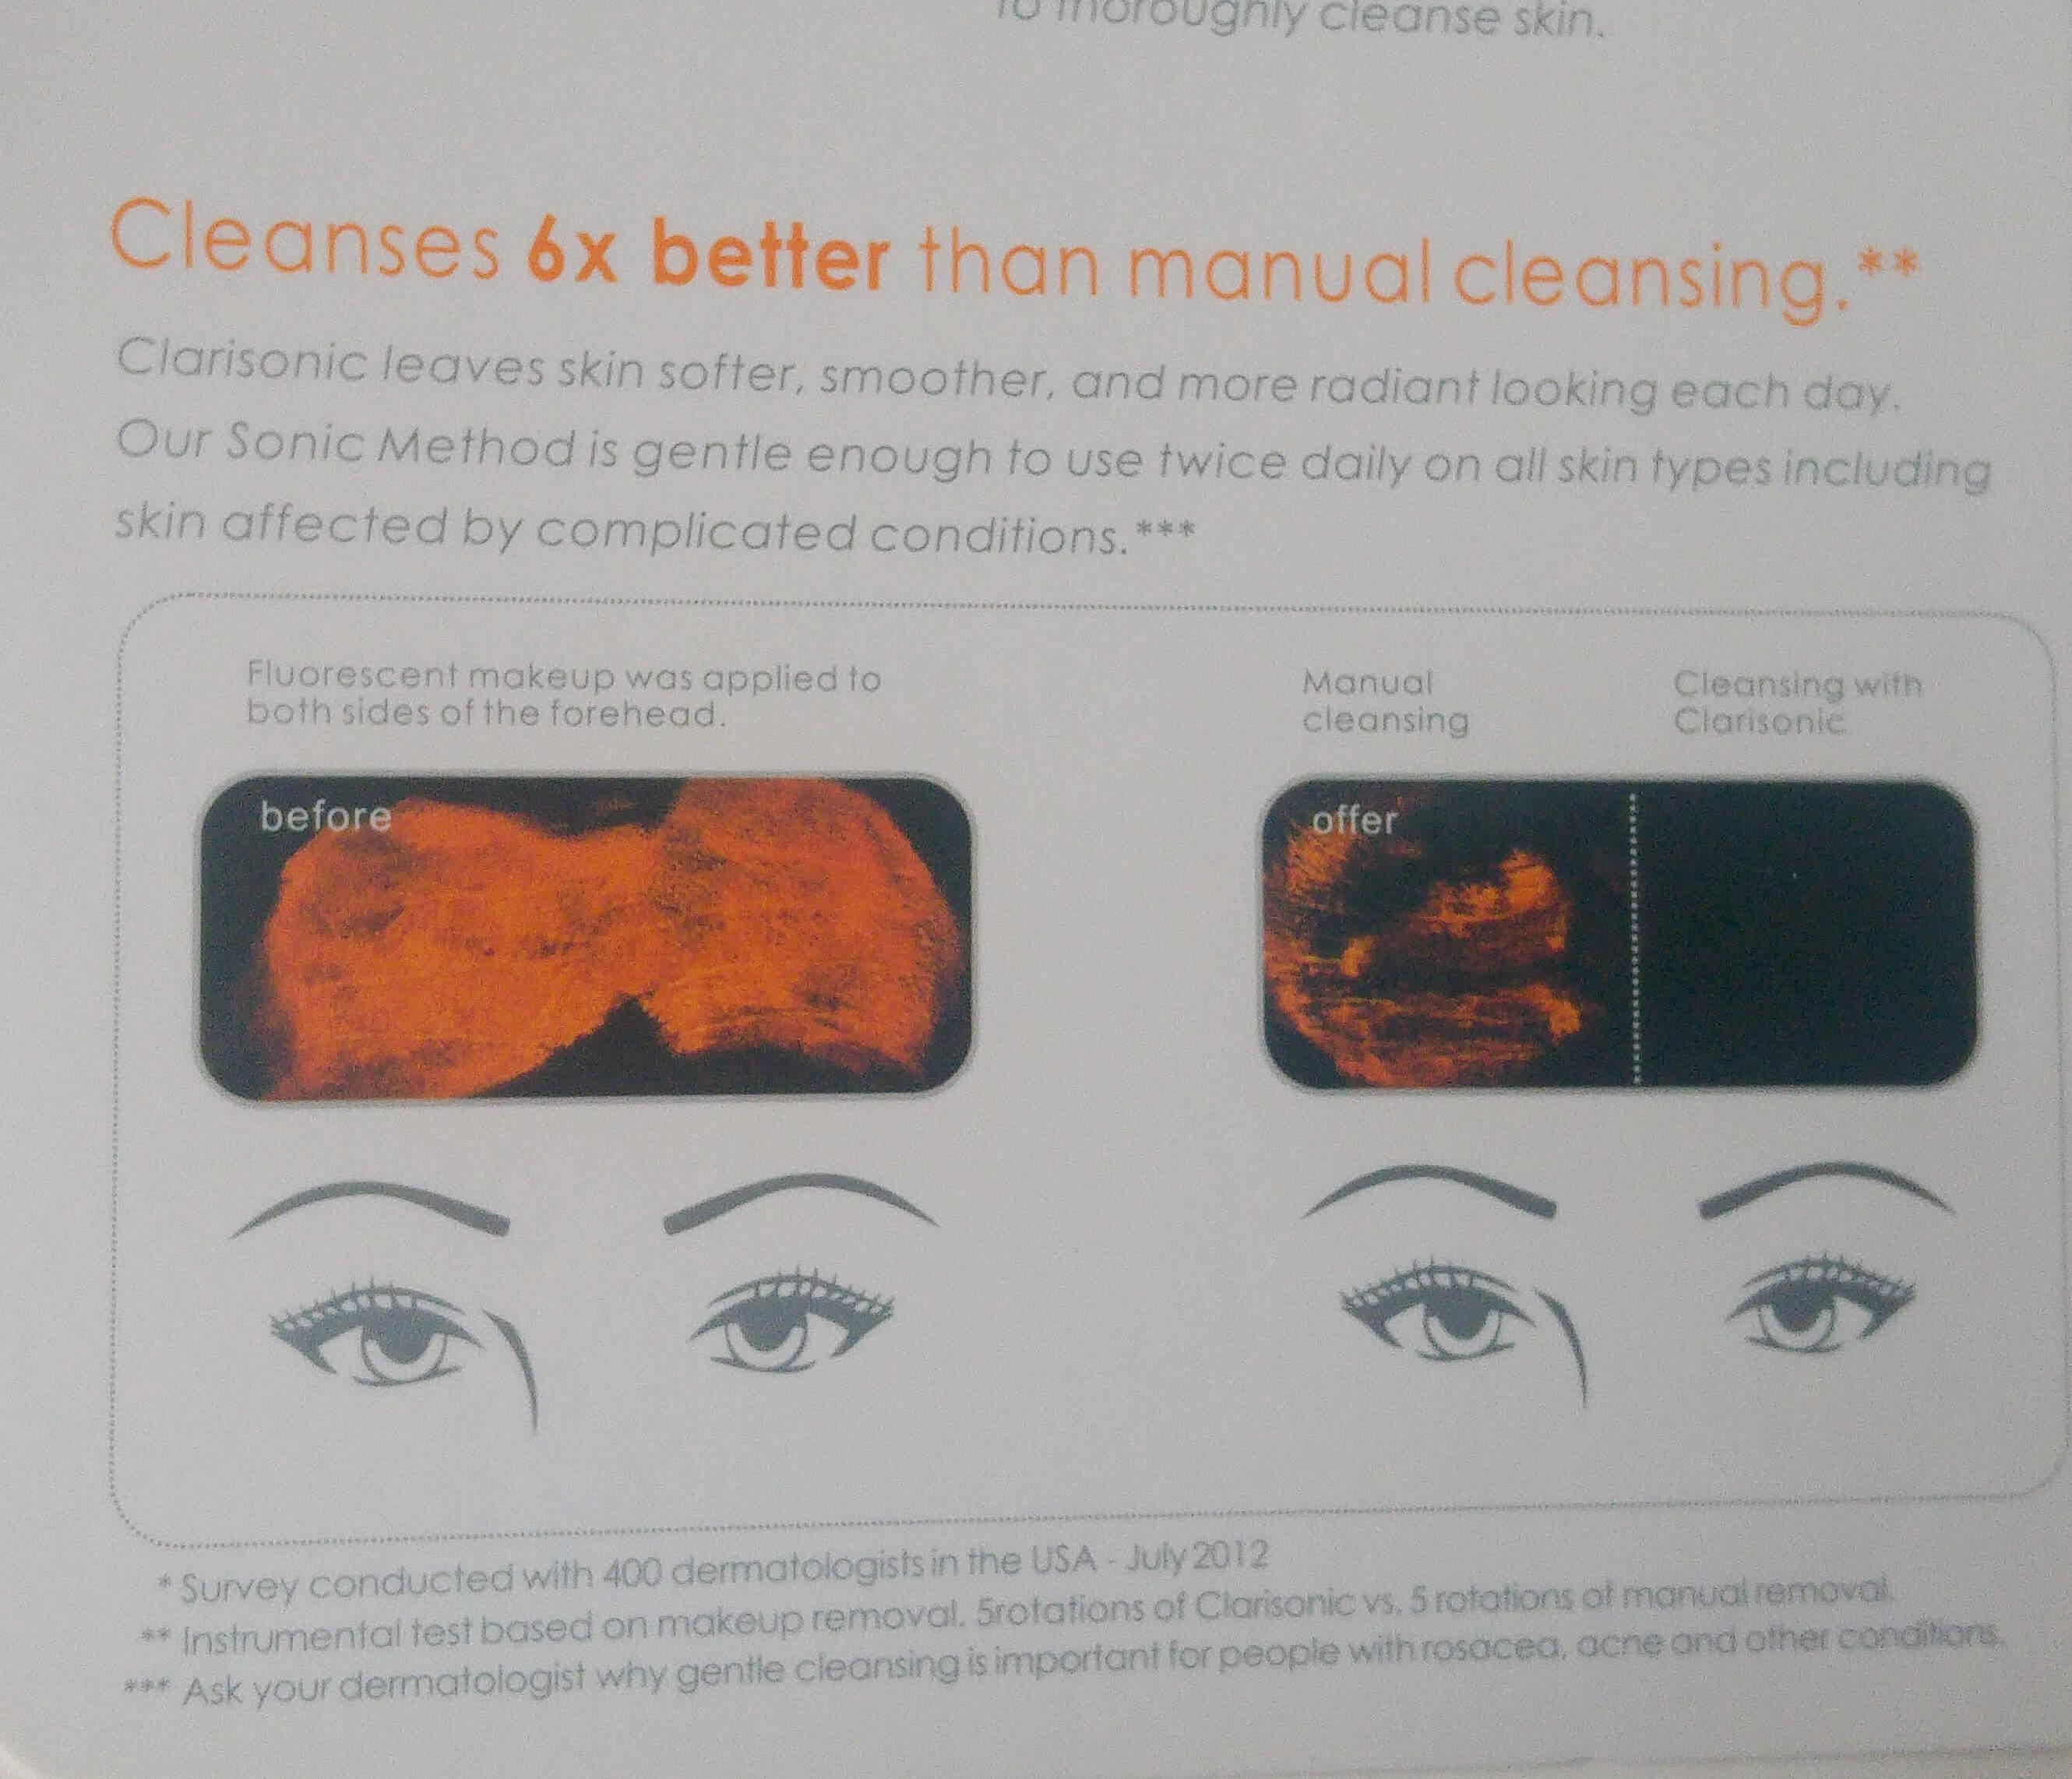 Clarisonic cleans 6 times better than your hands